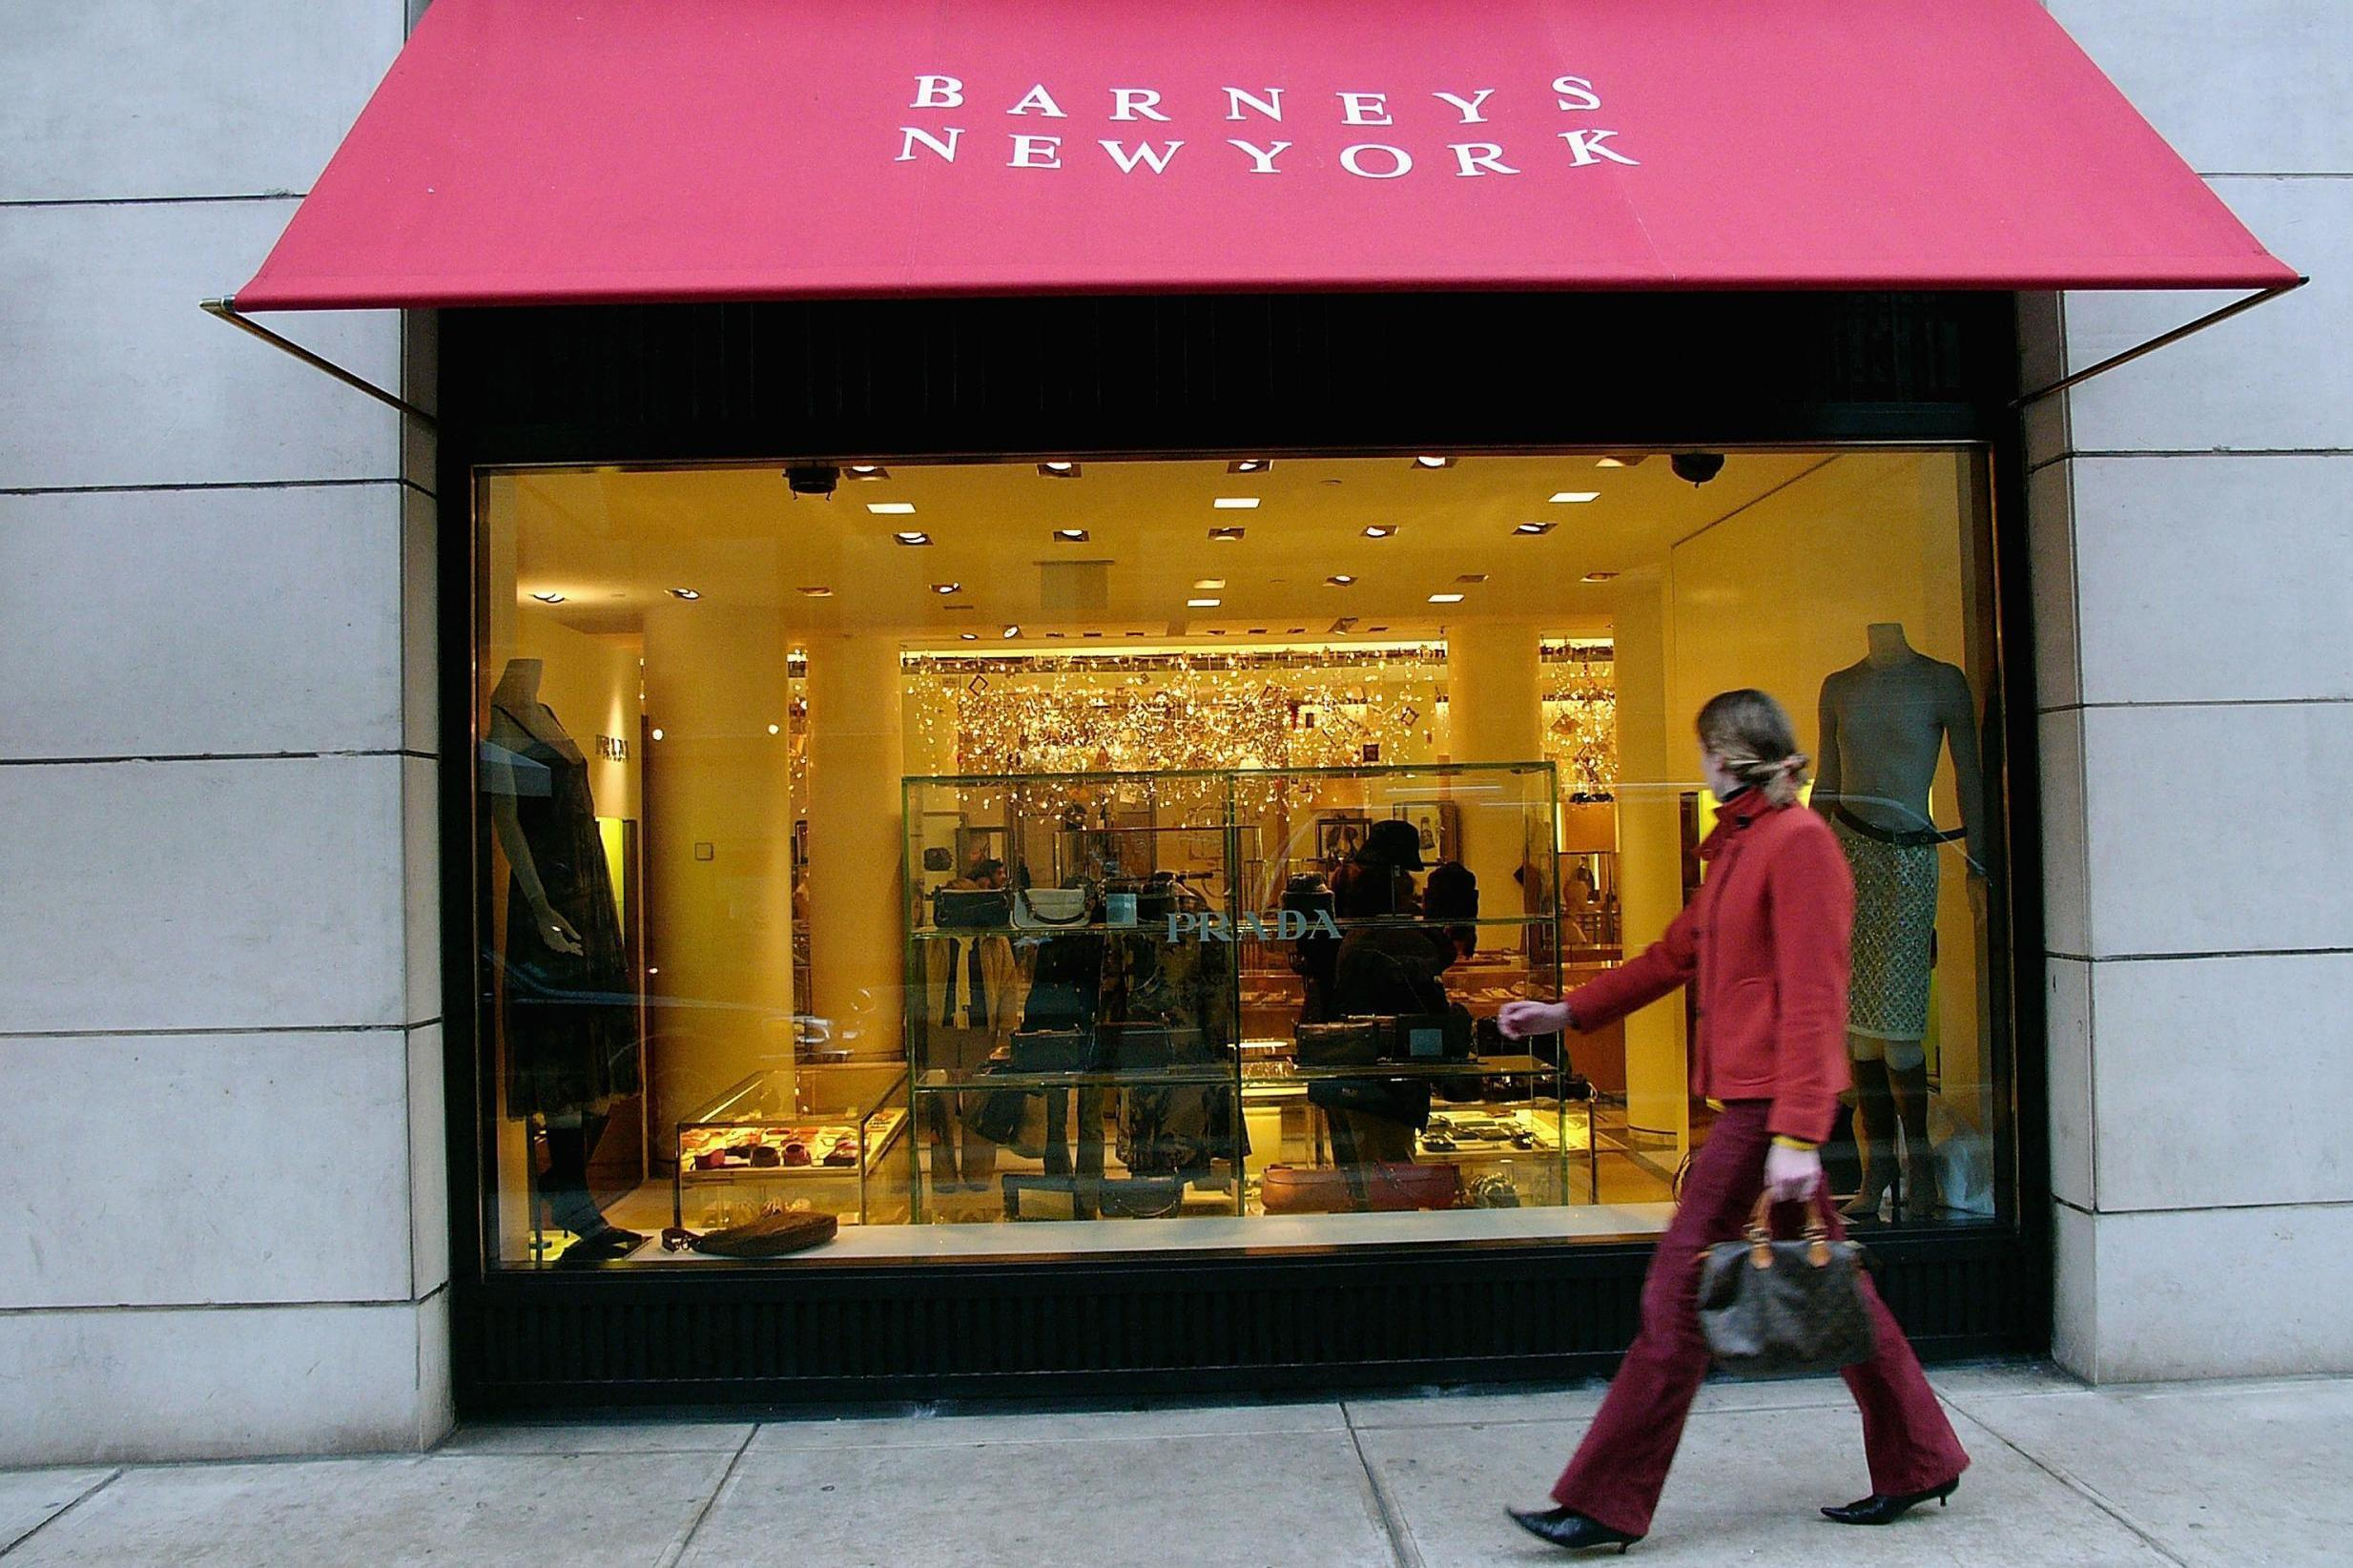 Barneys department store introducing cannabis section